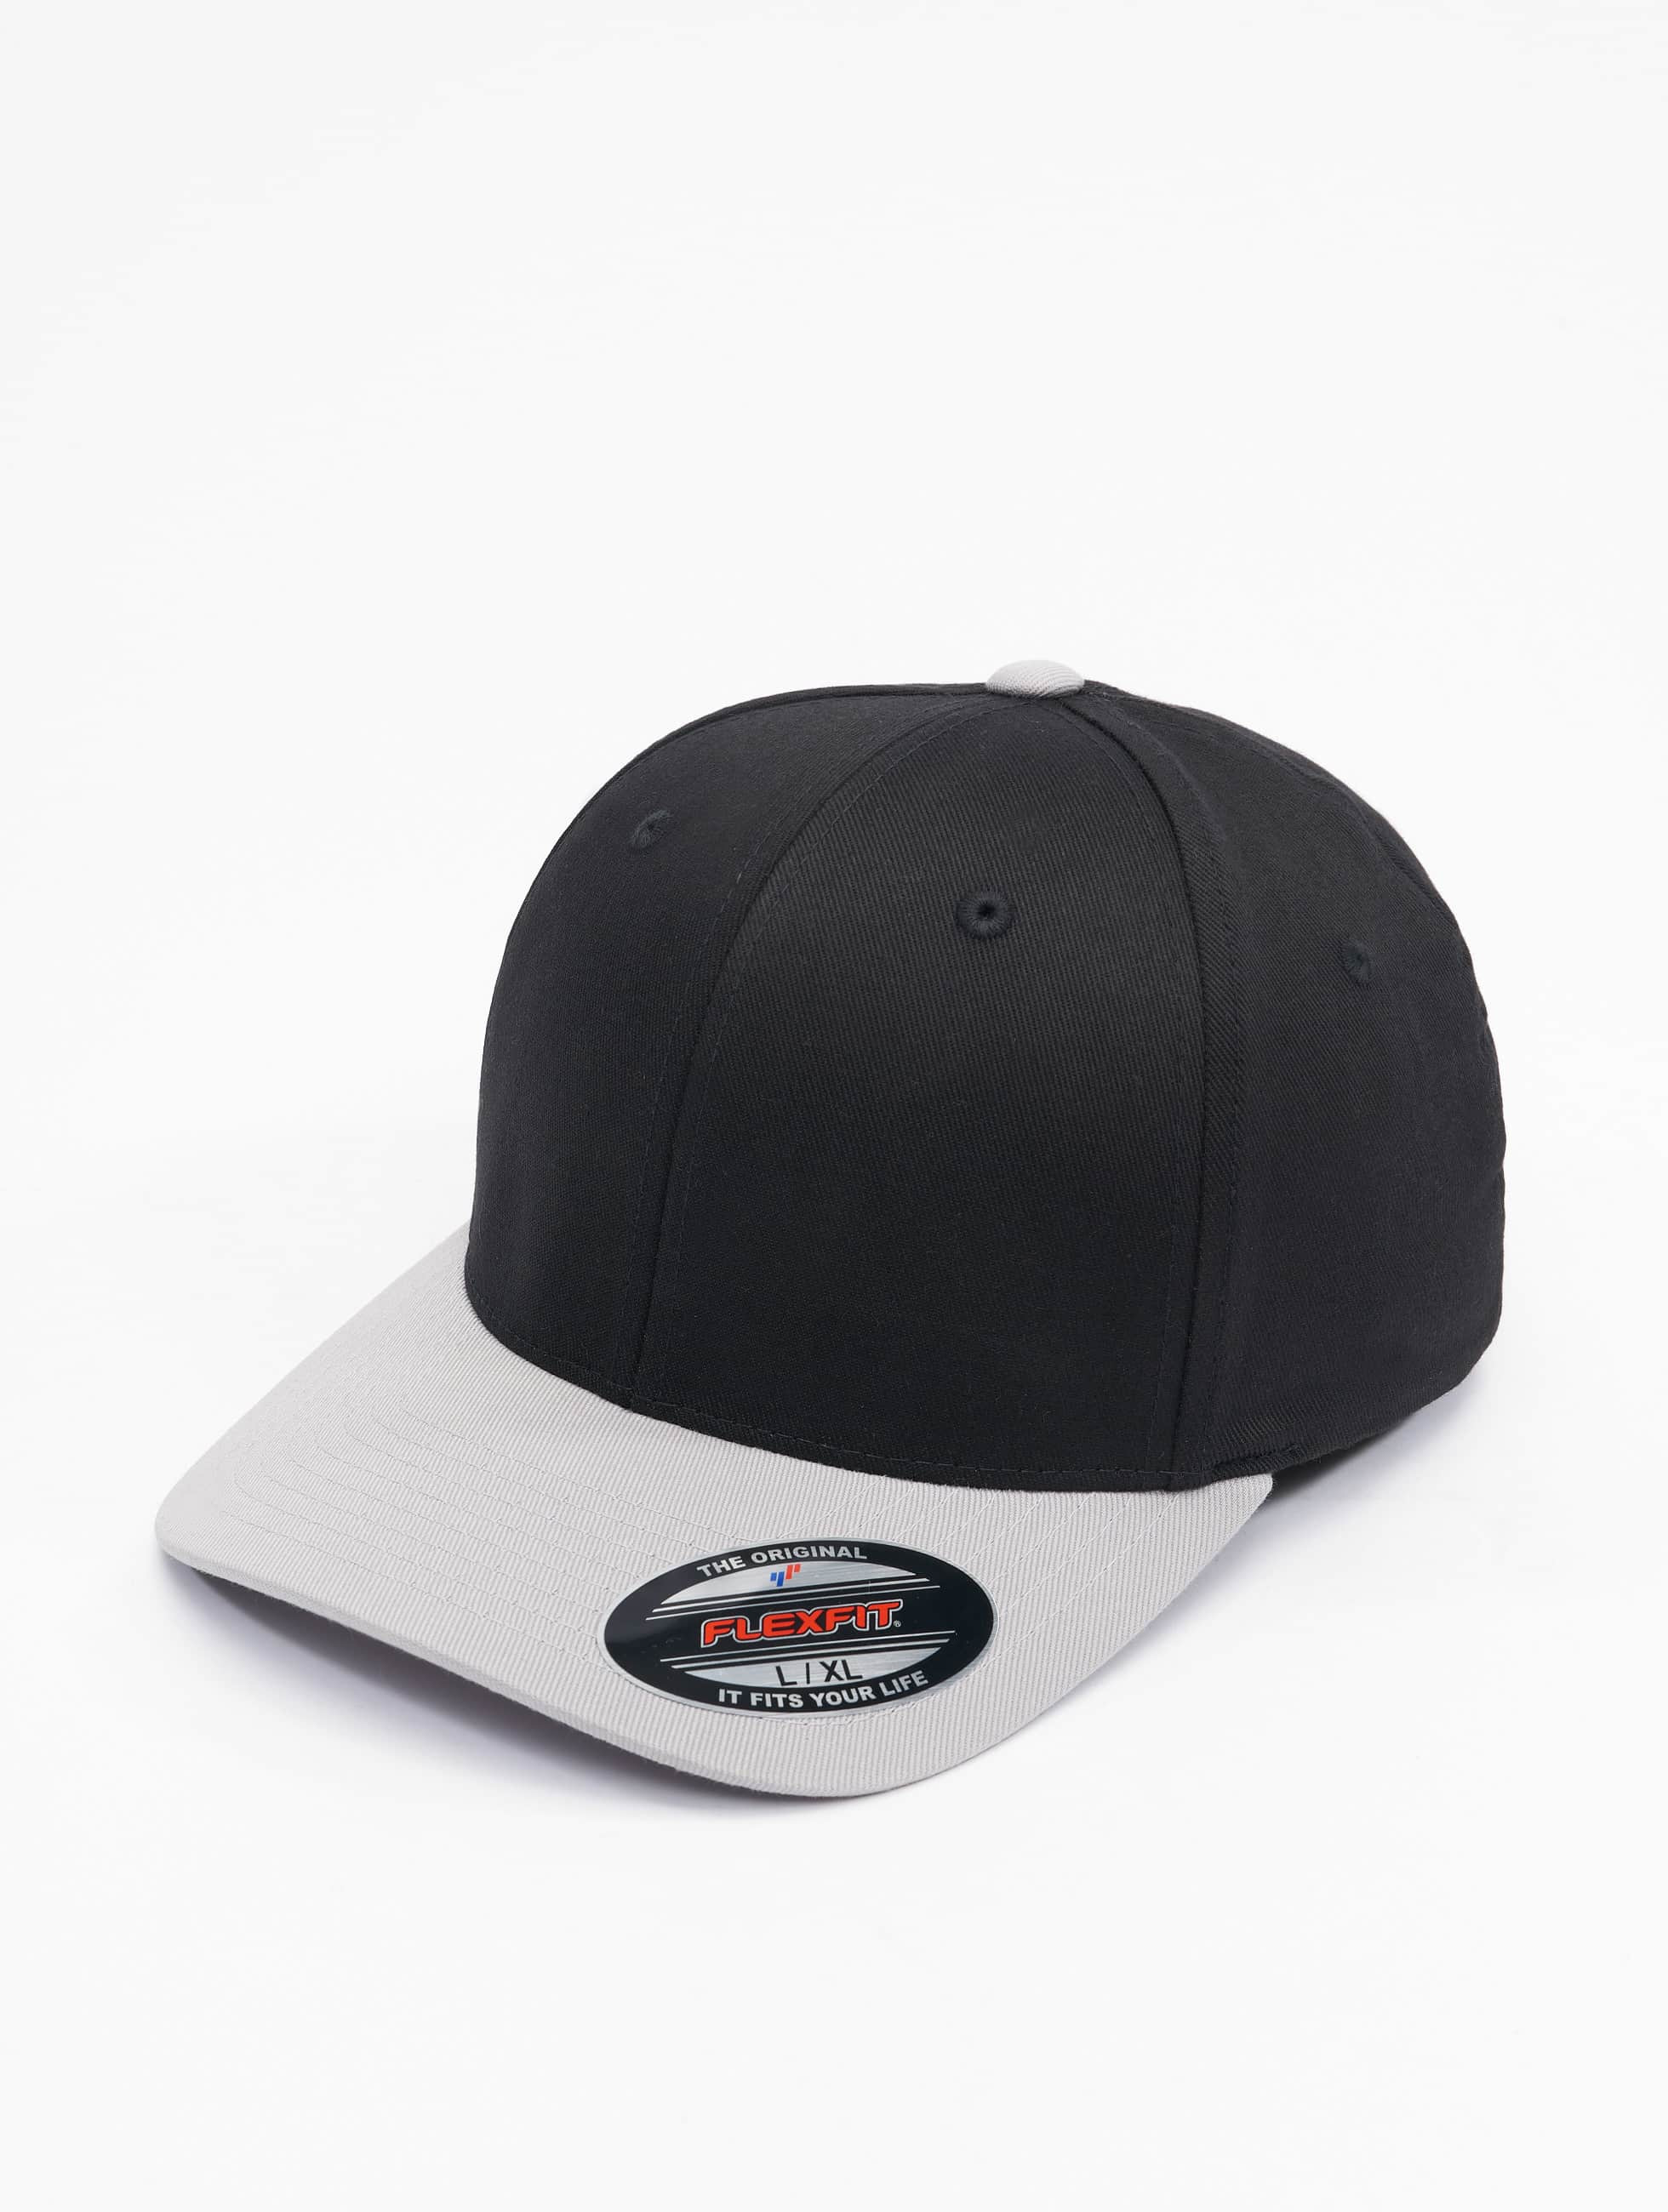 Flexfit Gorras Flexfitted 2-Tone Wooly Combed negro